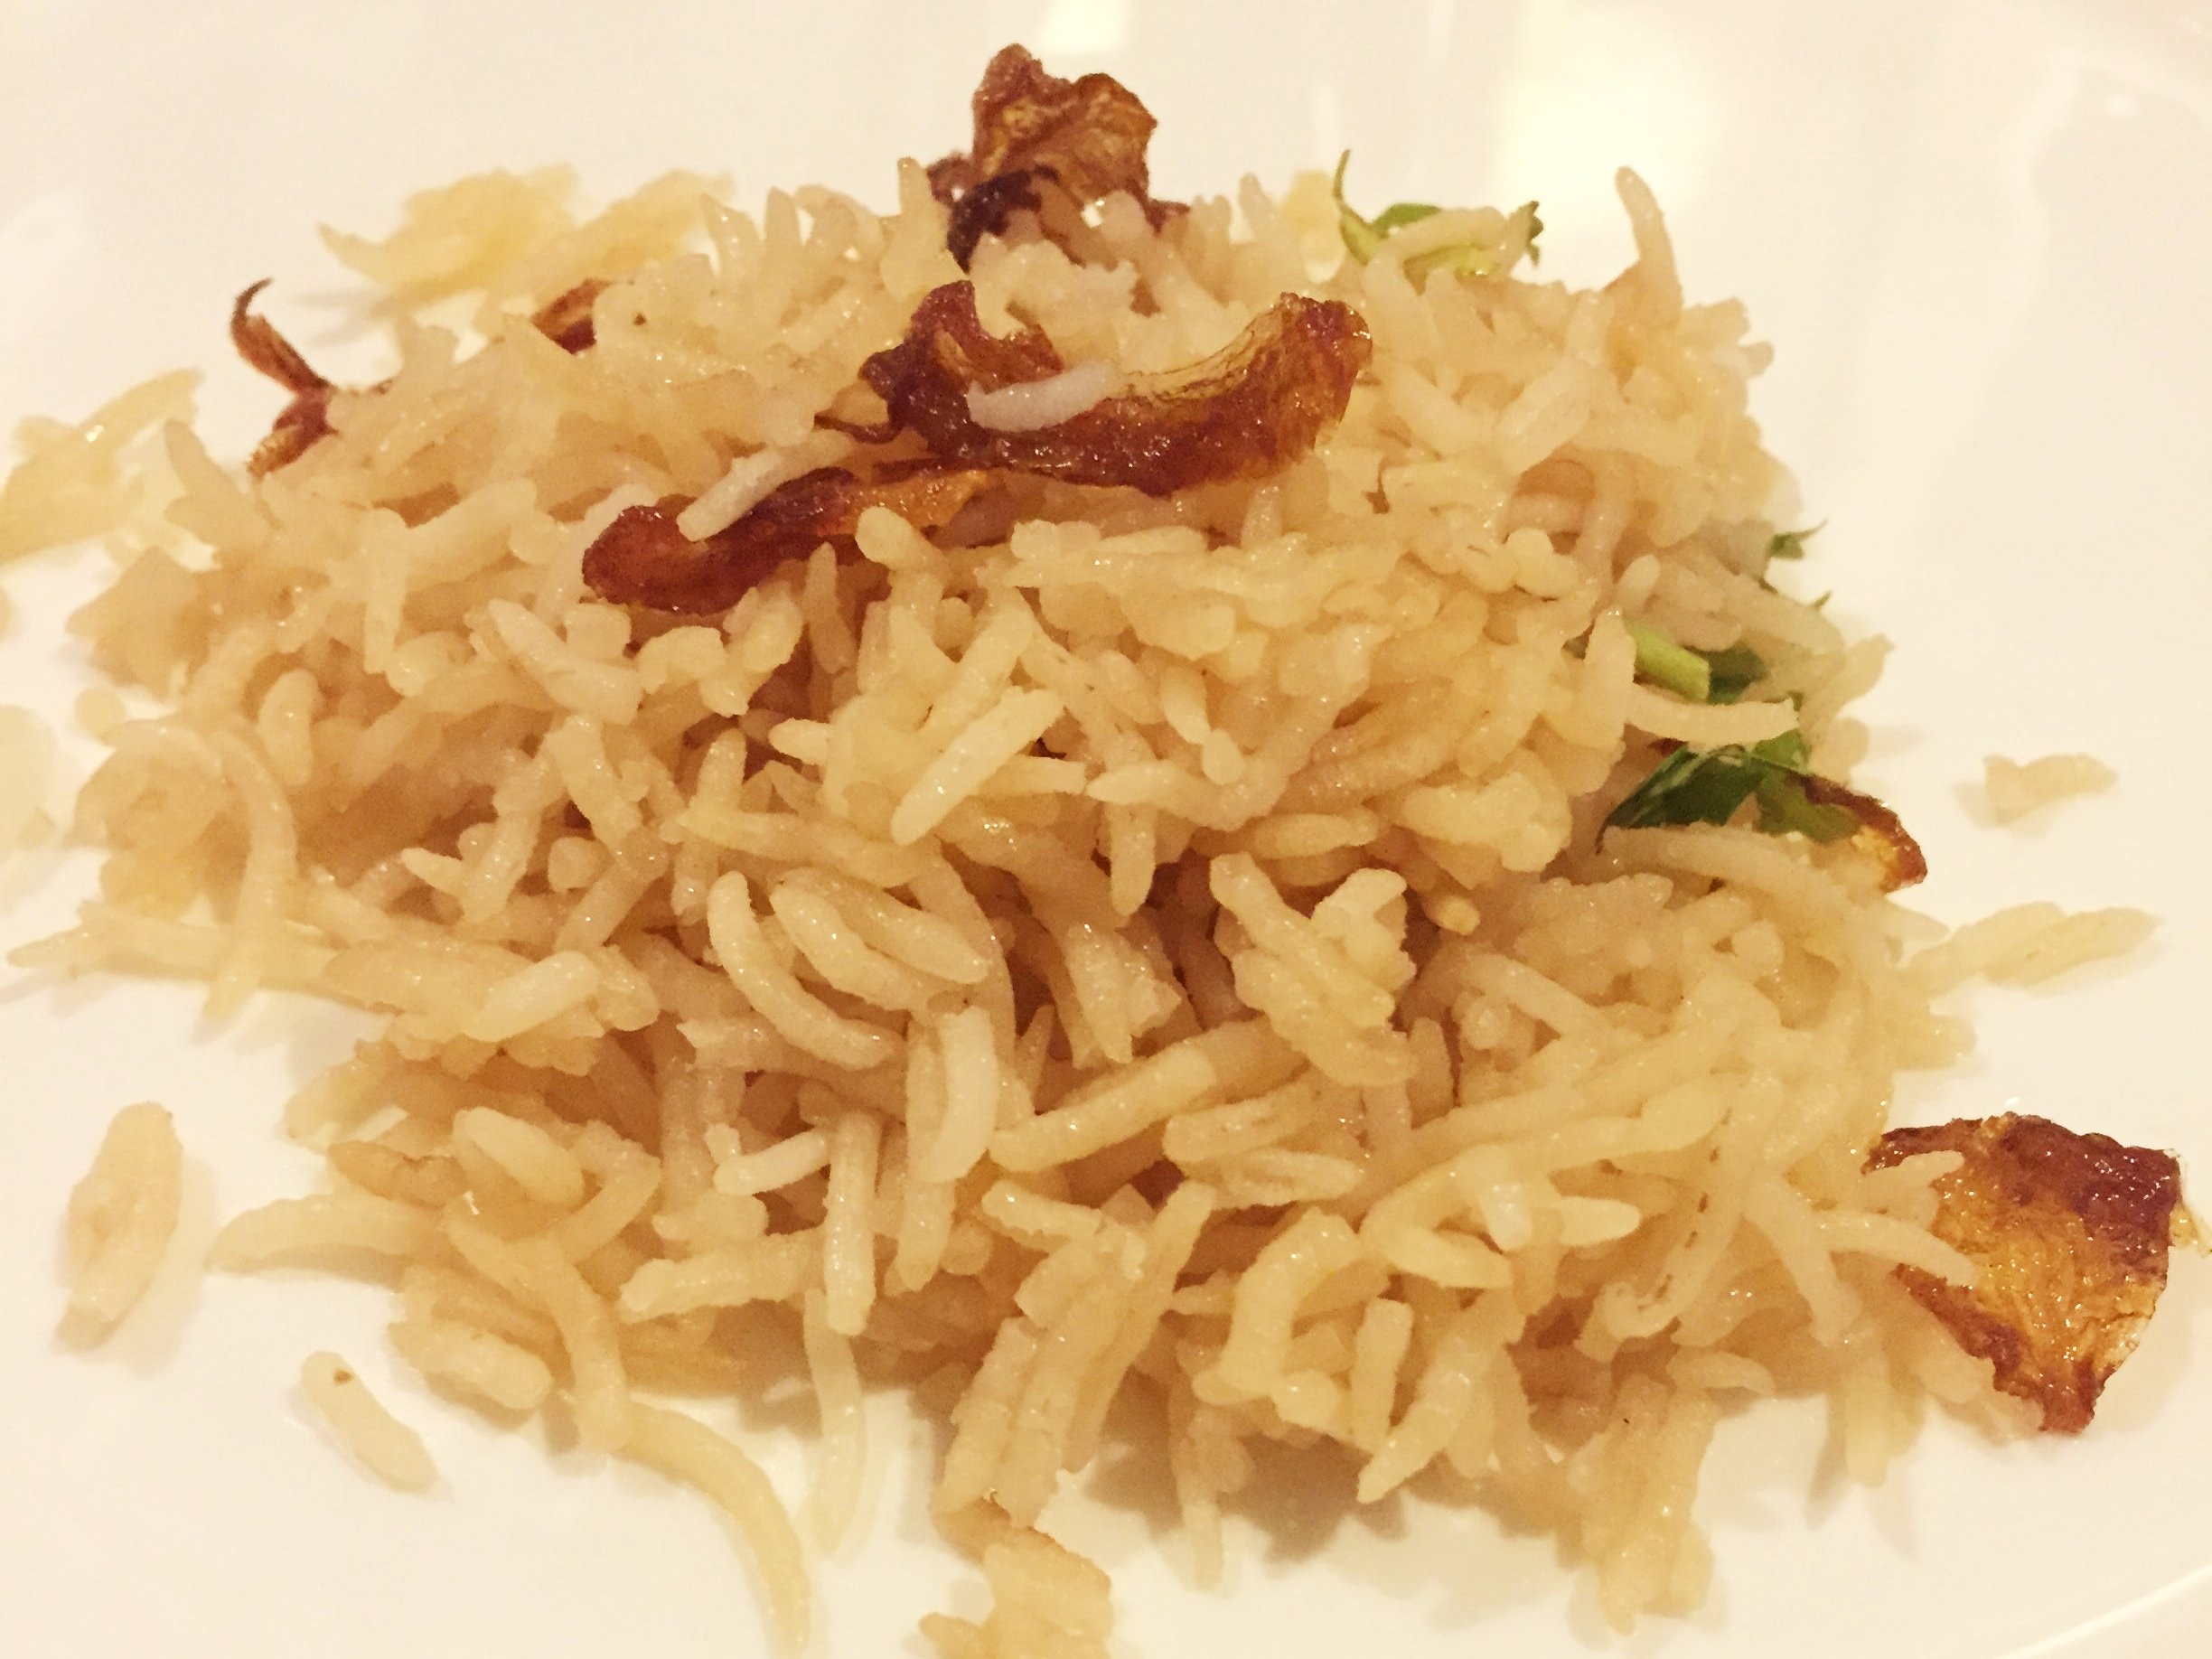 a small serve of Parsi brown rice